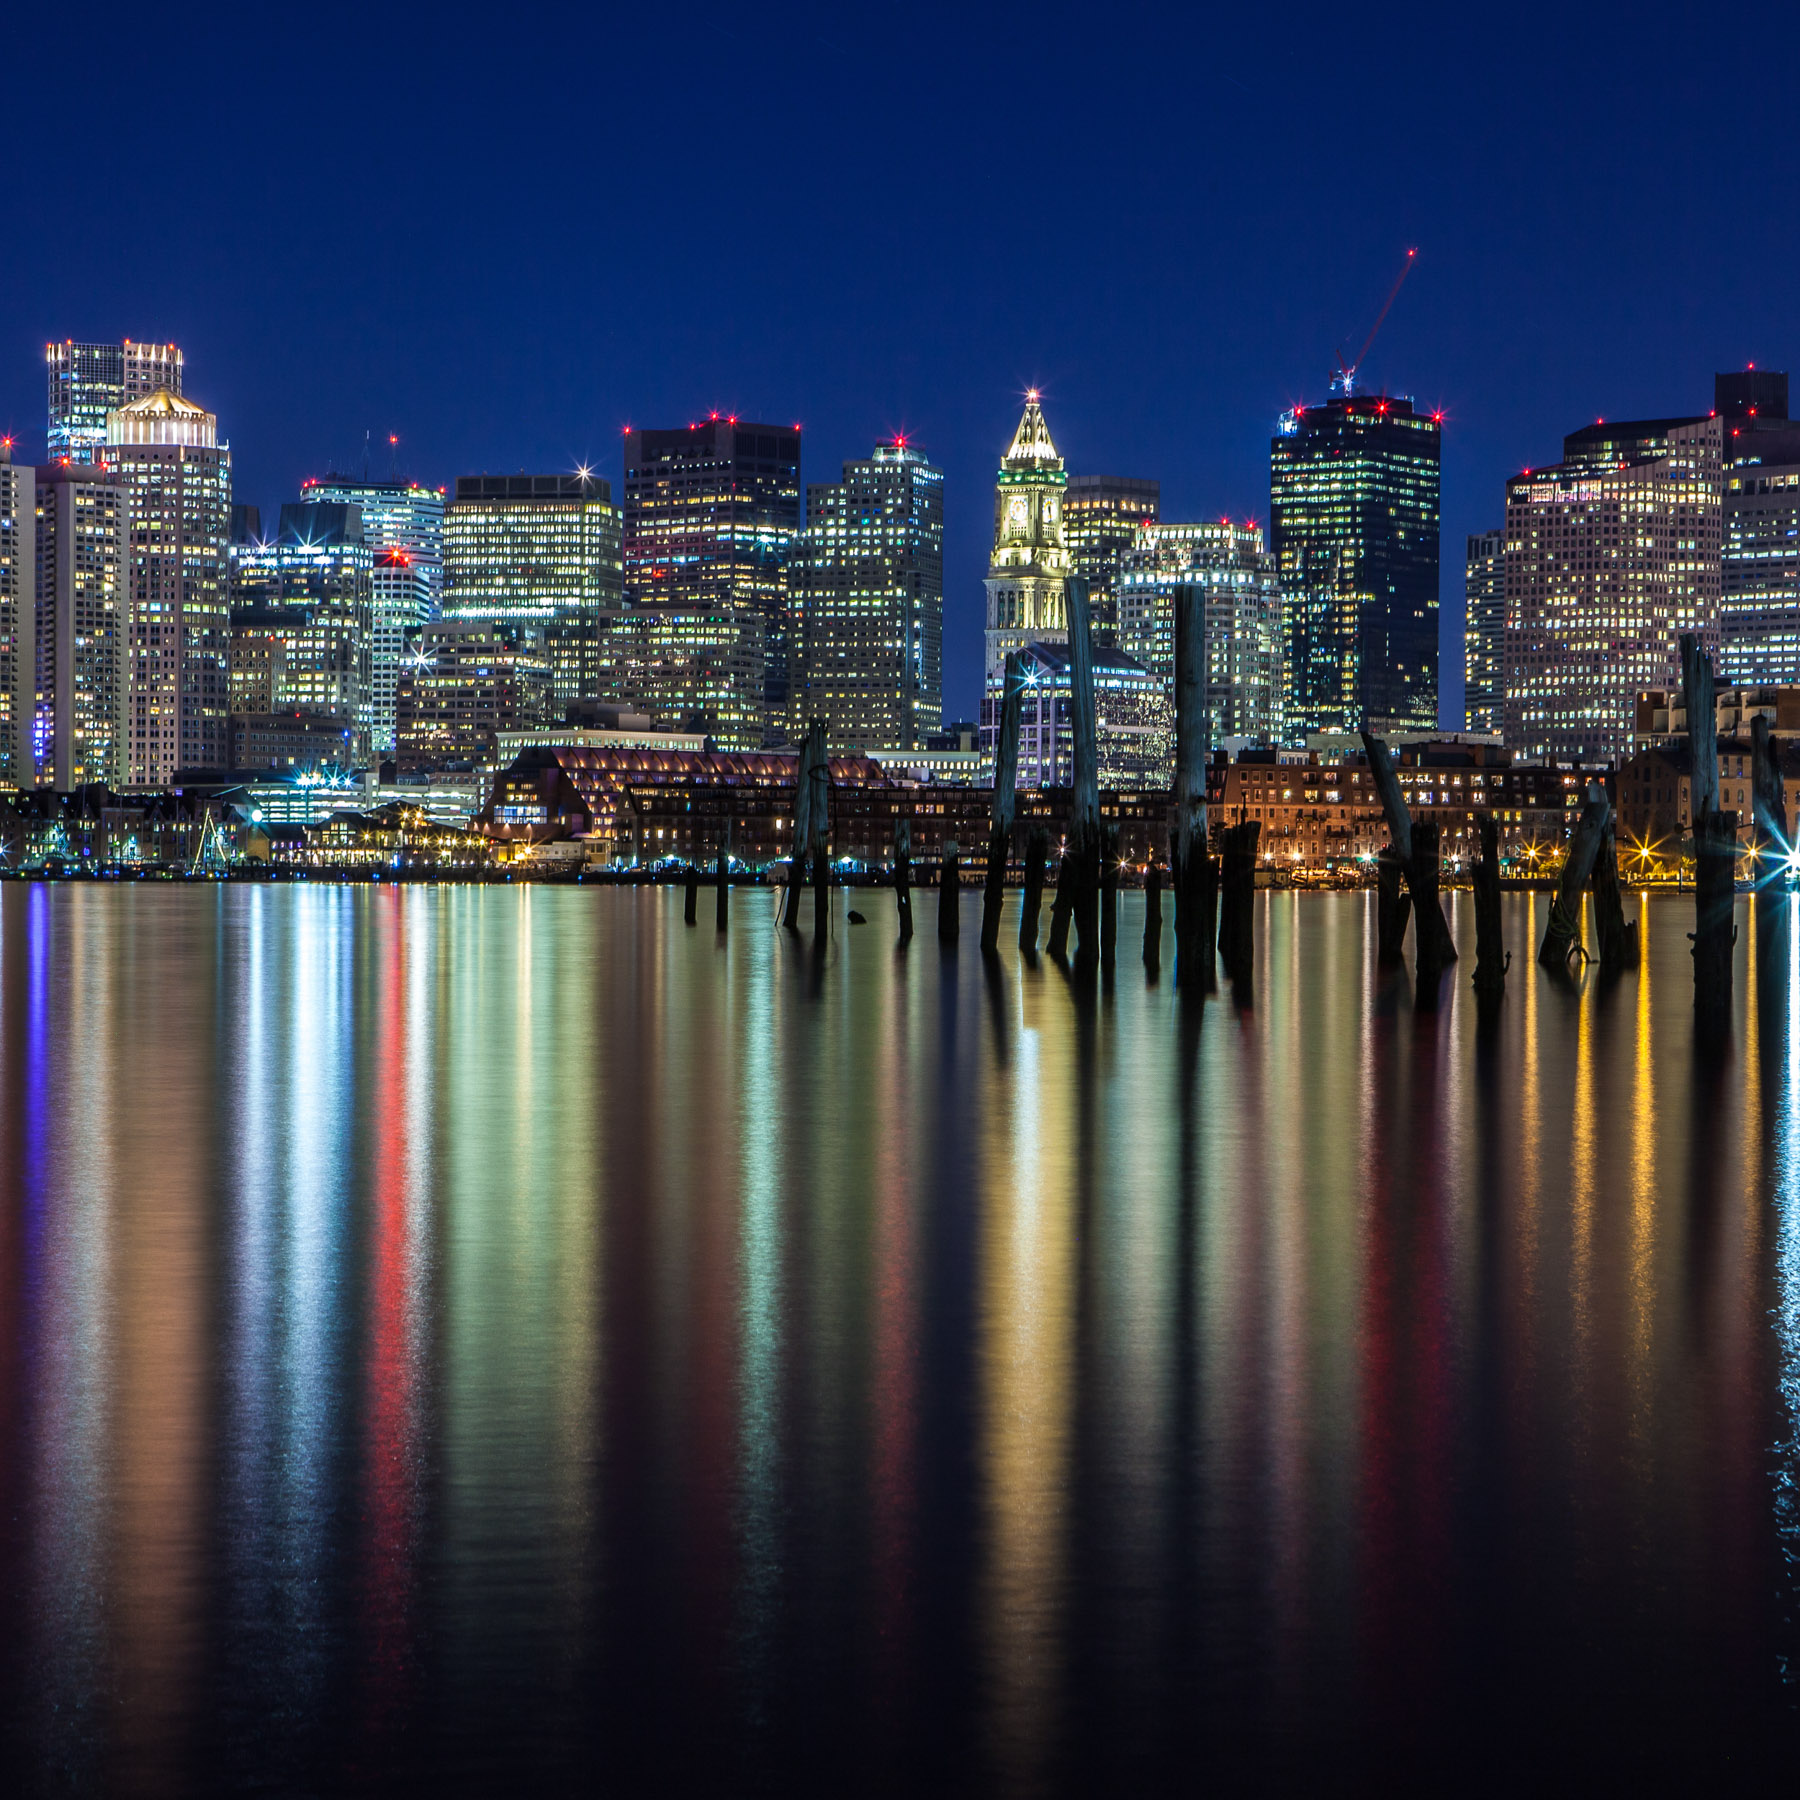 Boston skyline at night reflecting lights of the buildings.